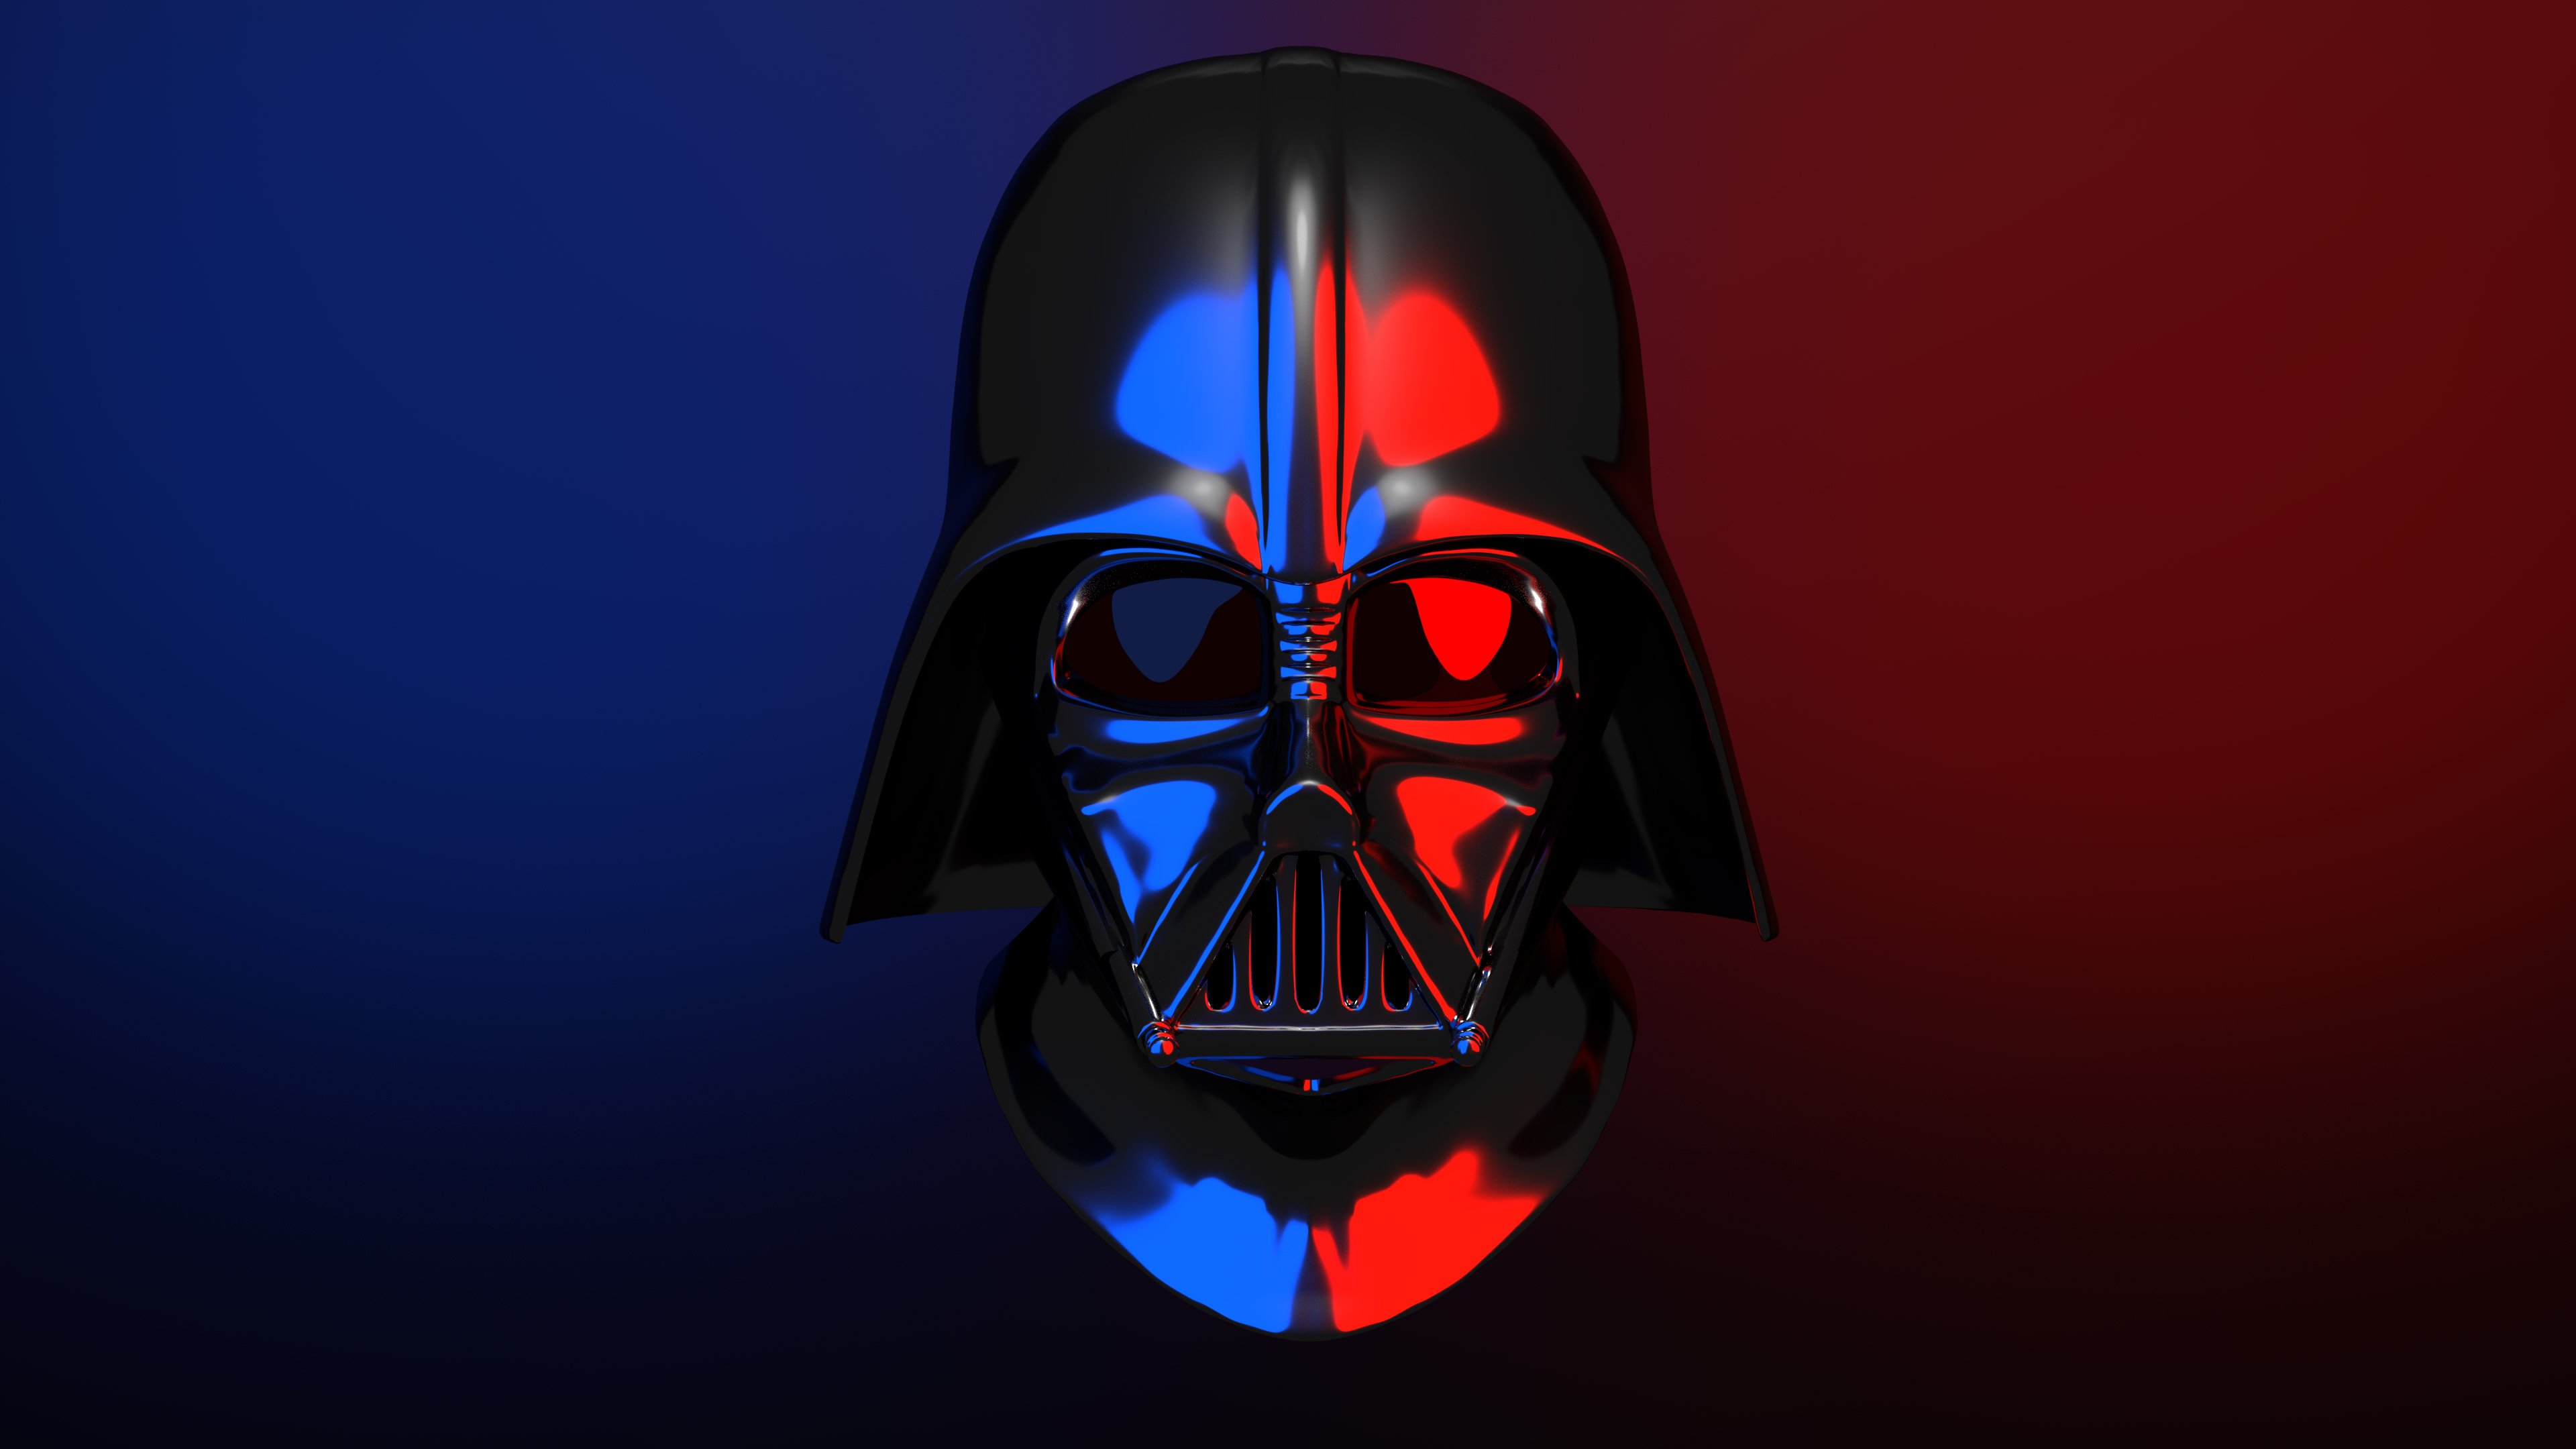 Vader 4K wallpapers for your desktop or mobile screen and 3840x2160